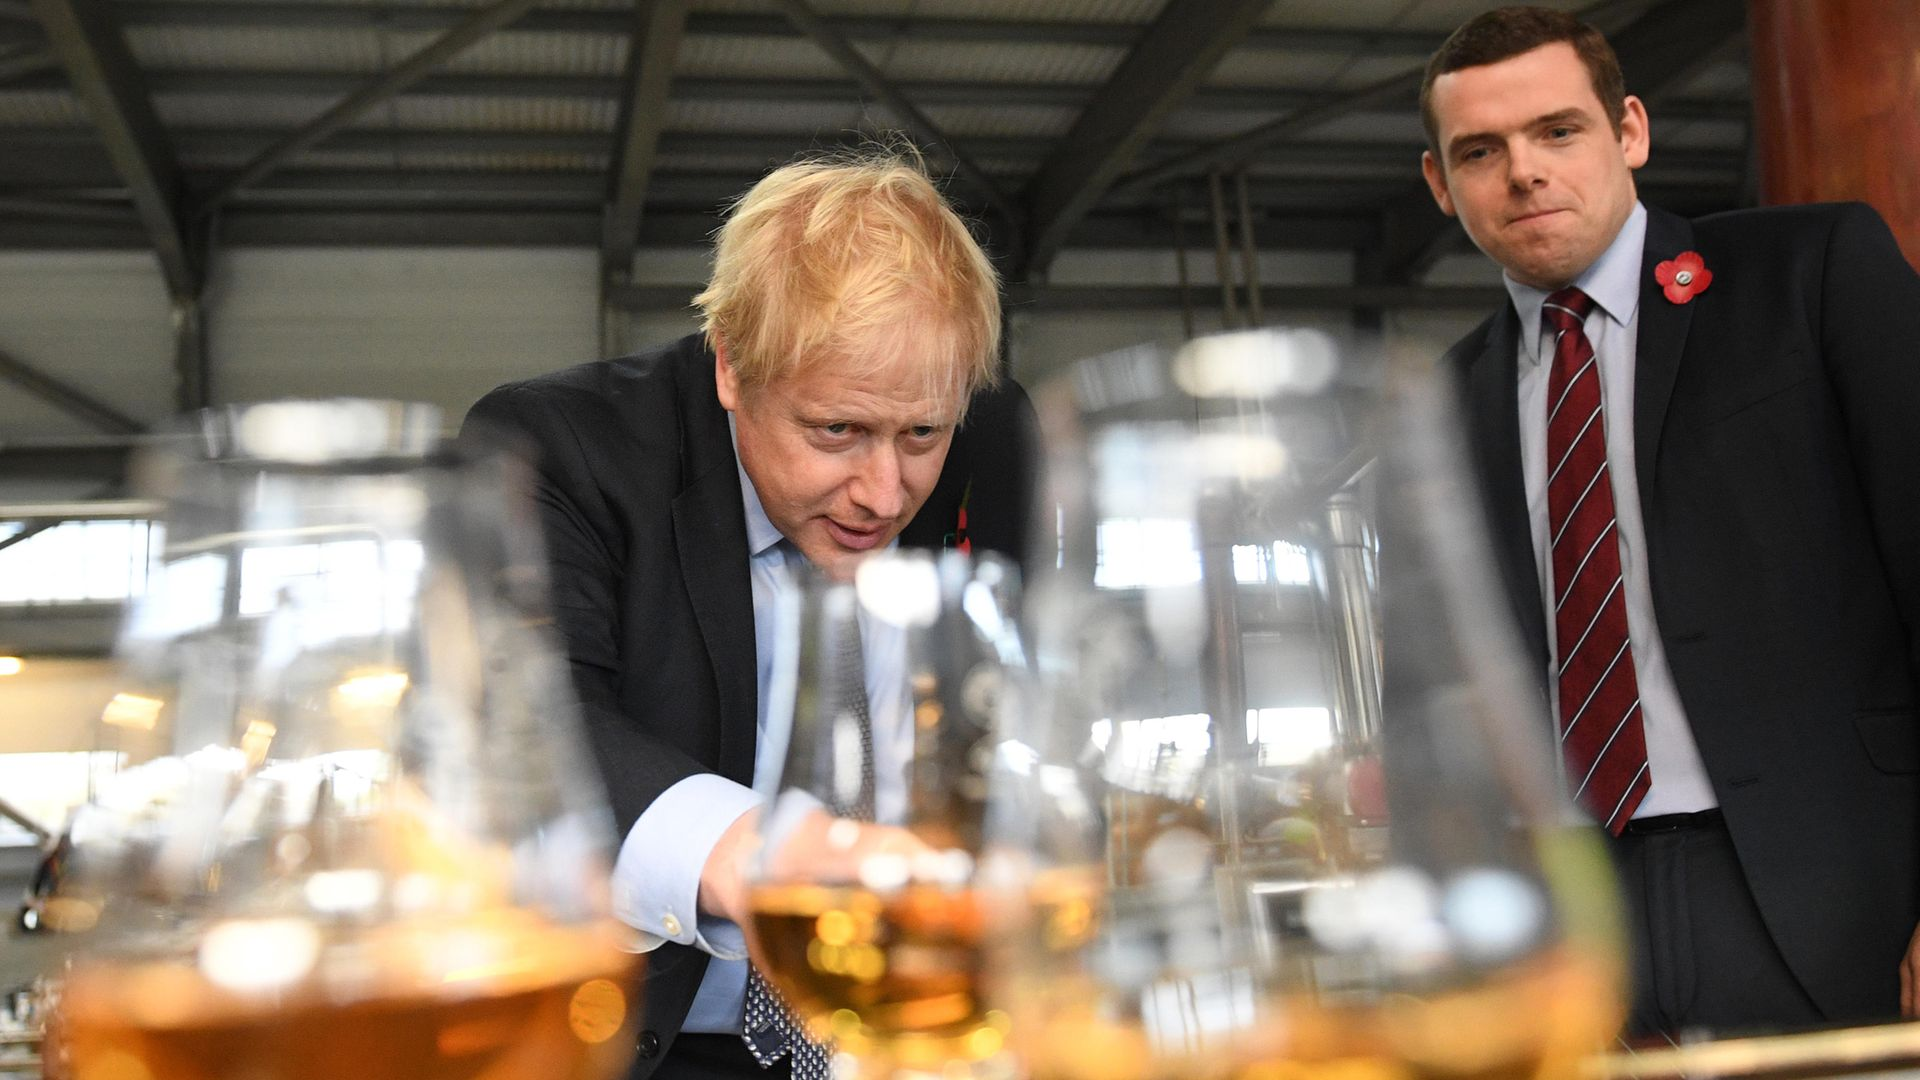 Prime minister Boris Johnson tastes whisky at the Roseisle Distillery in Scotland near Moray with Douglas Ross, leader of the Scottish Conservative Party MP (right) - Credit: PA